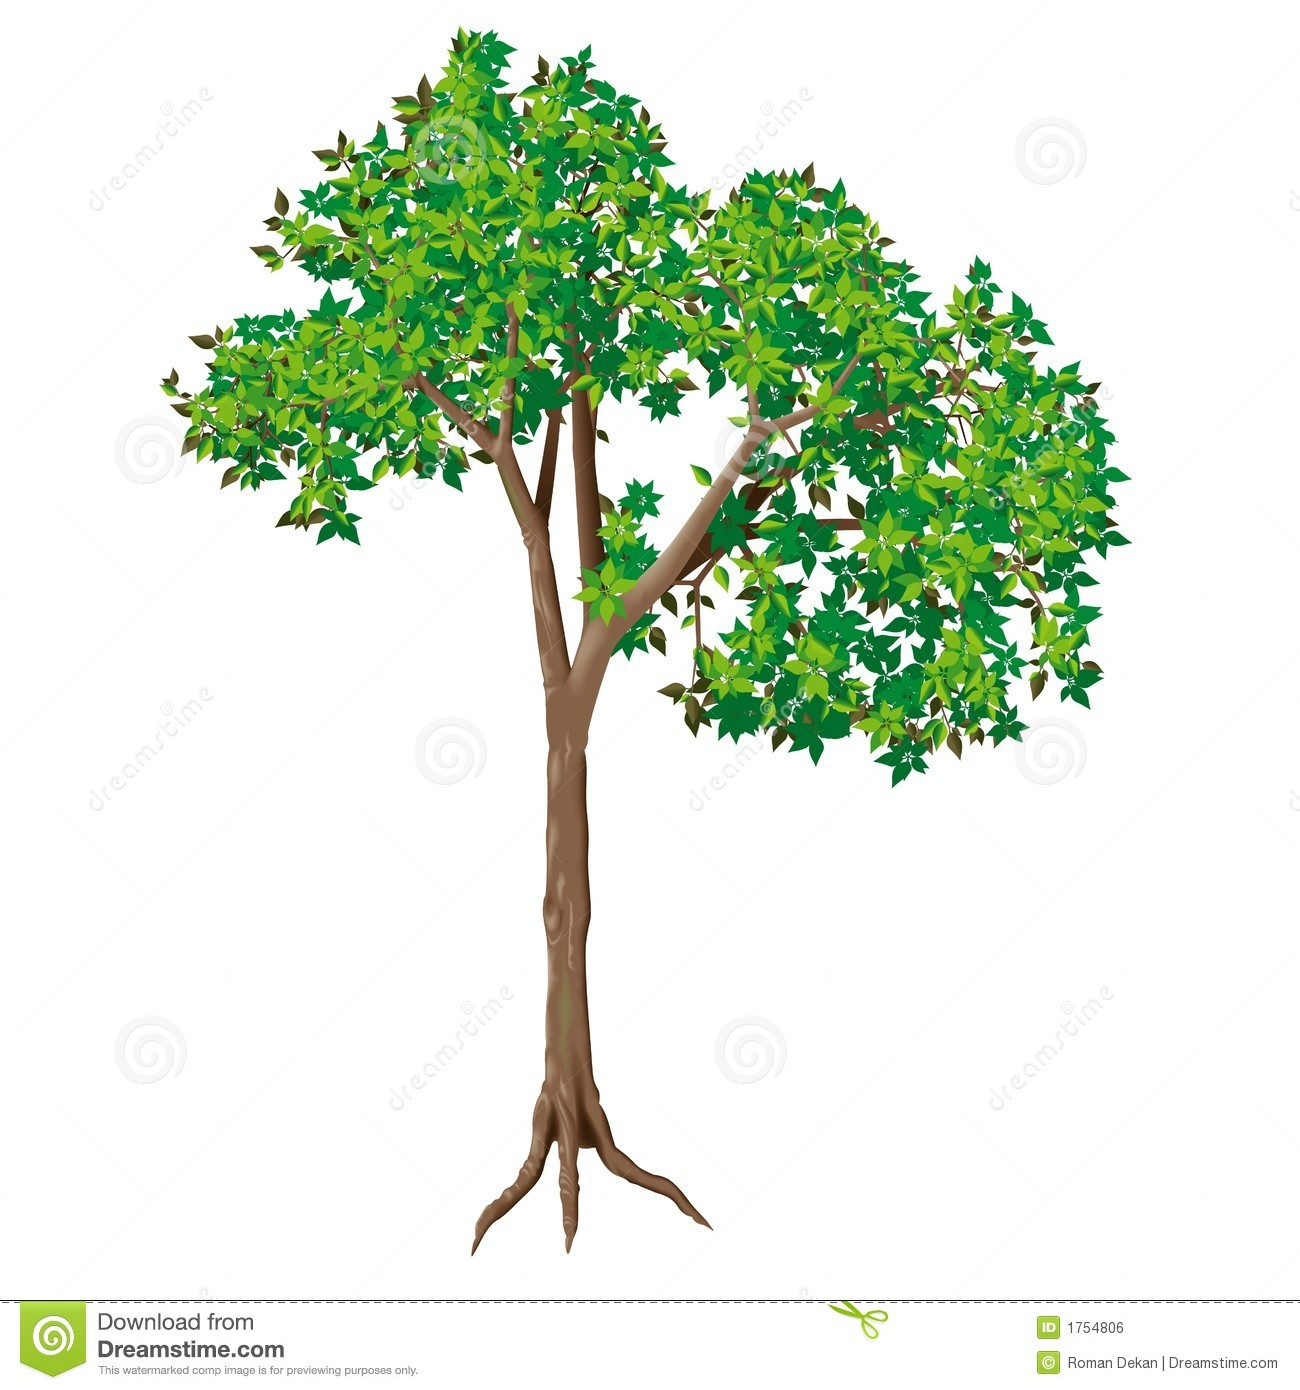 Deciduous Tree Royalty Free Stock Image.